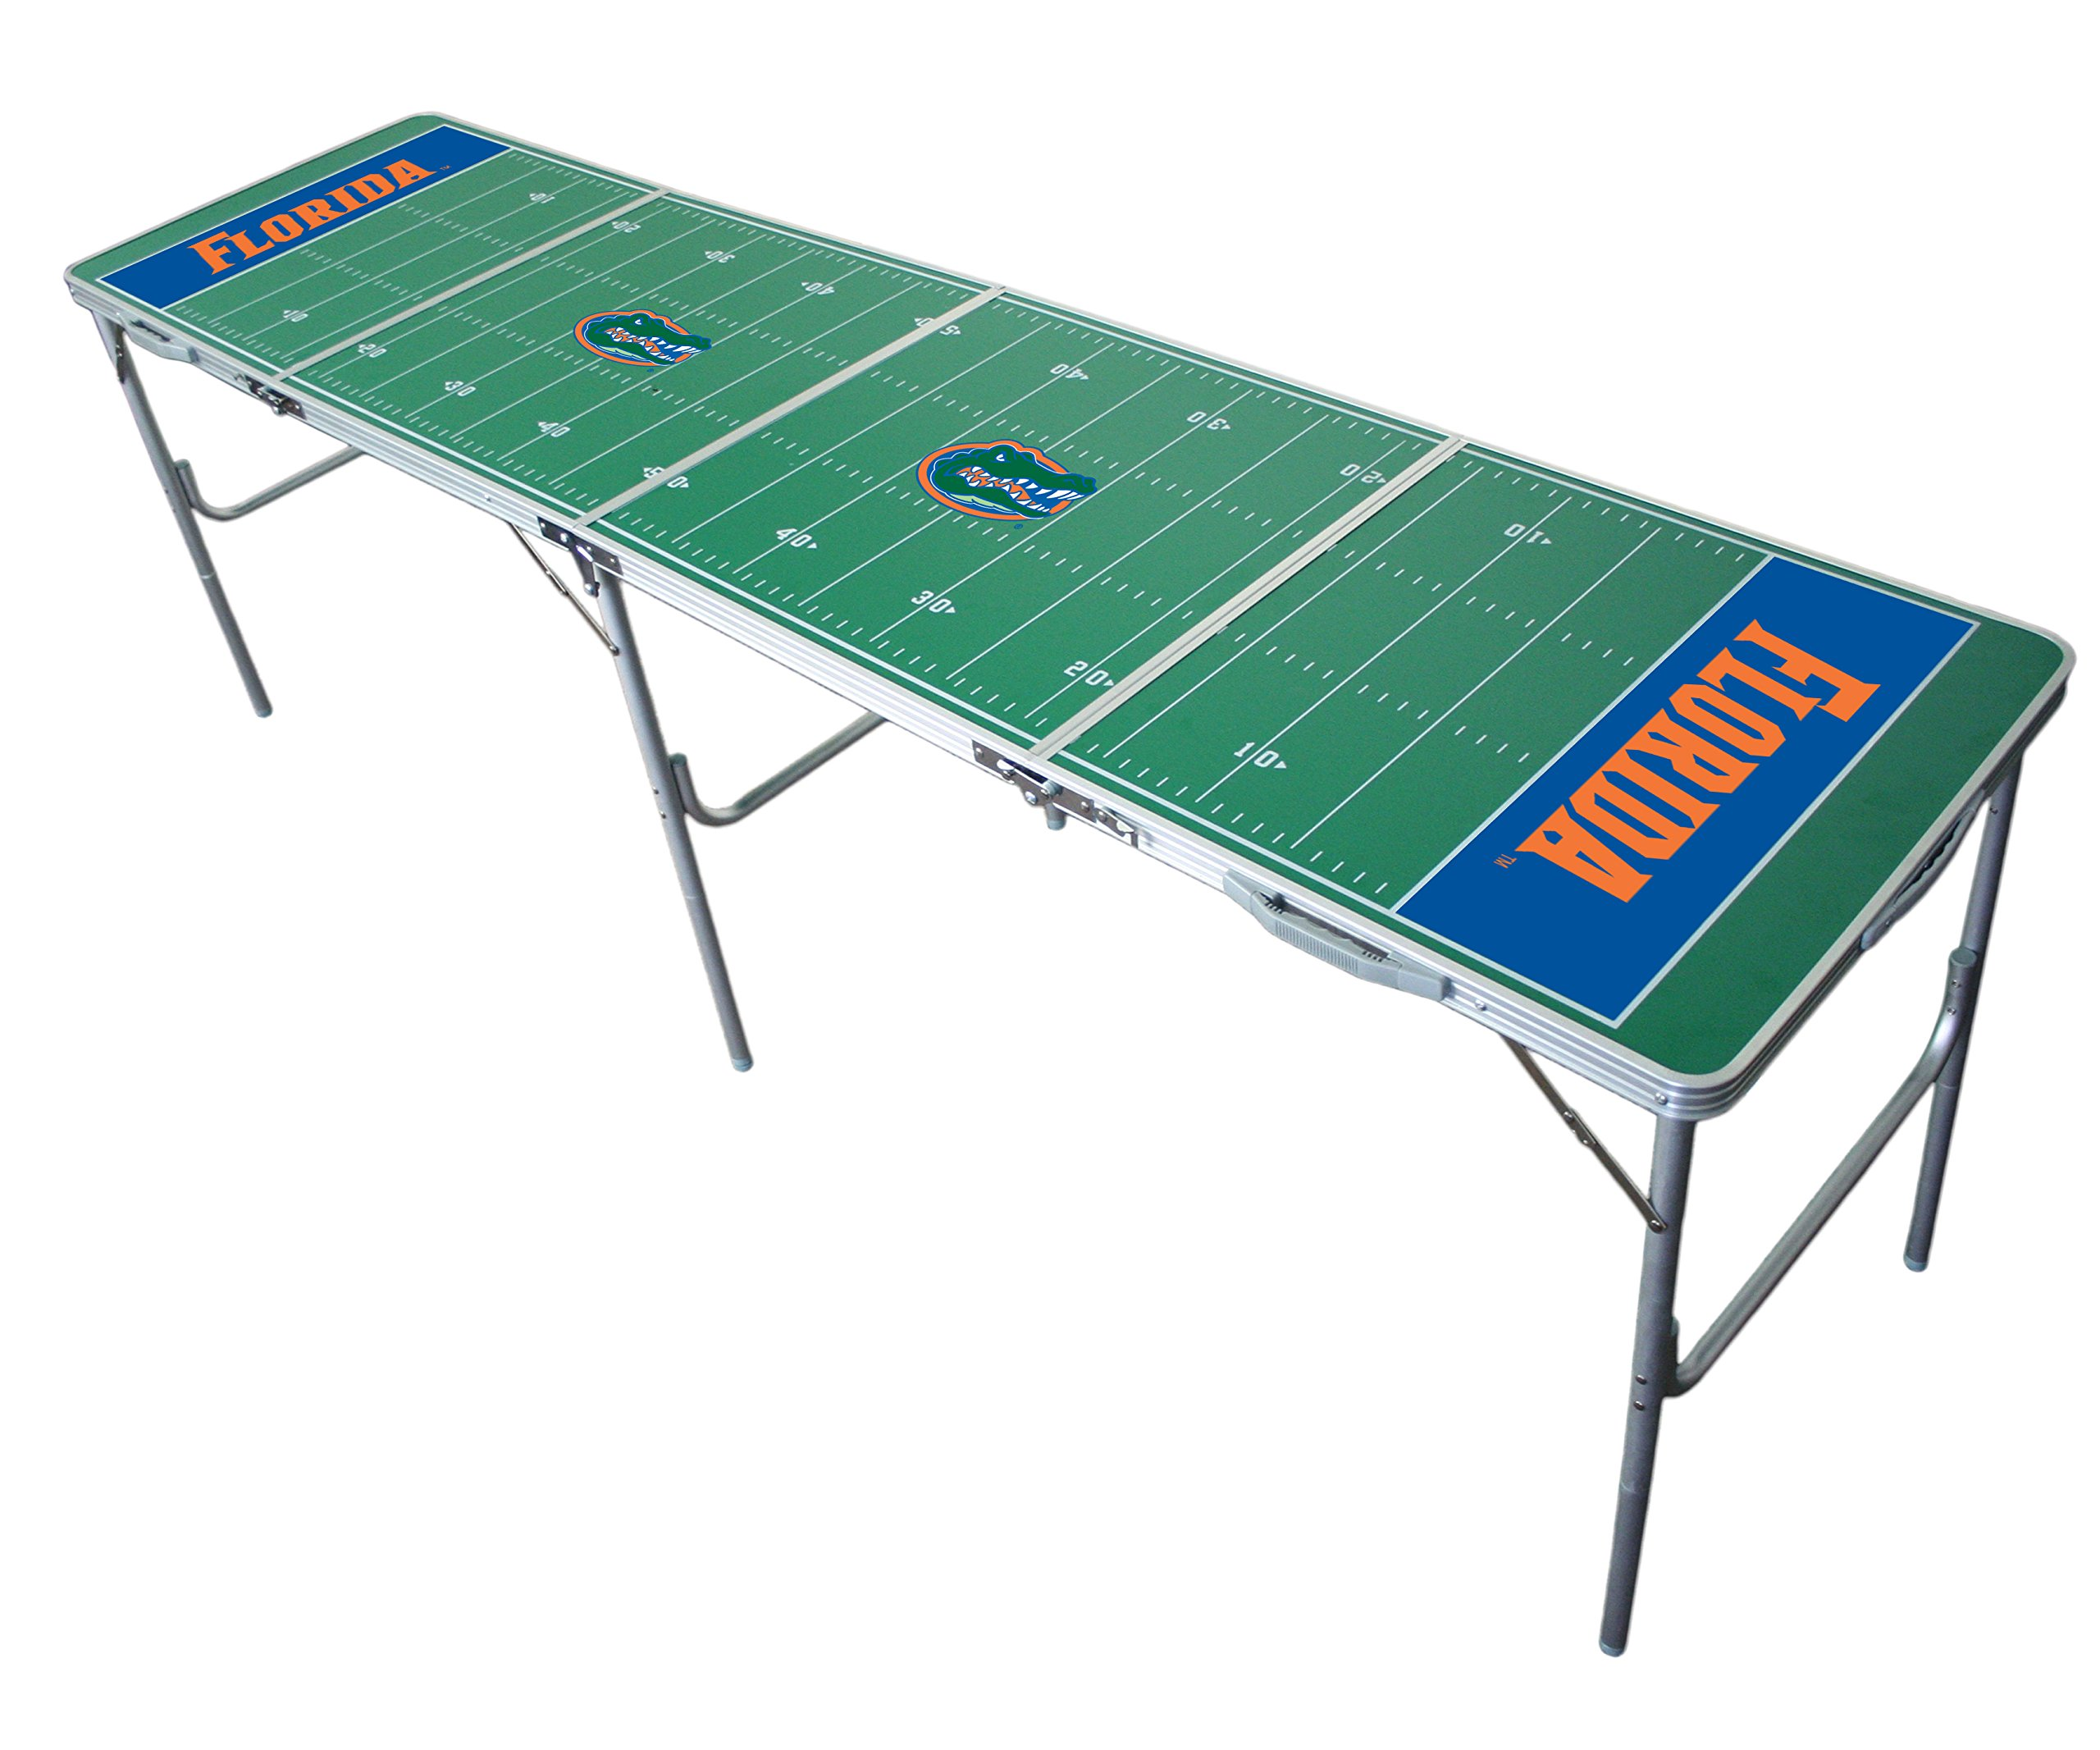 Florida Gators 2x8 Tailgate Table by Wild Sports by Wild Sports